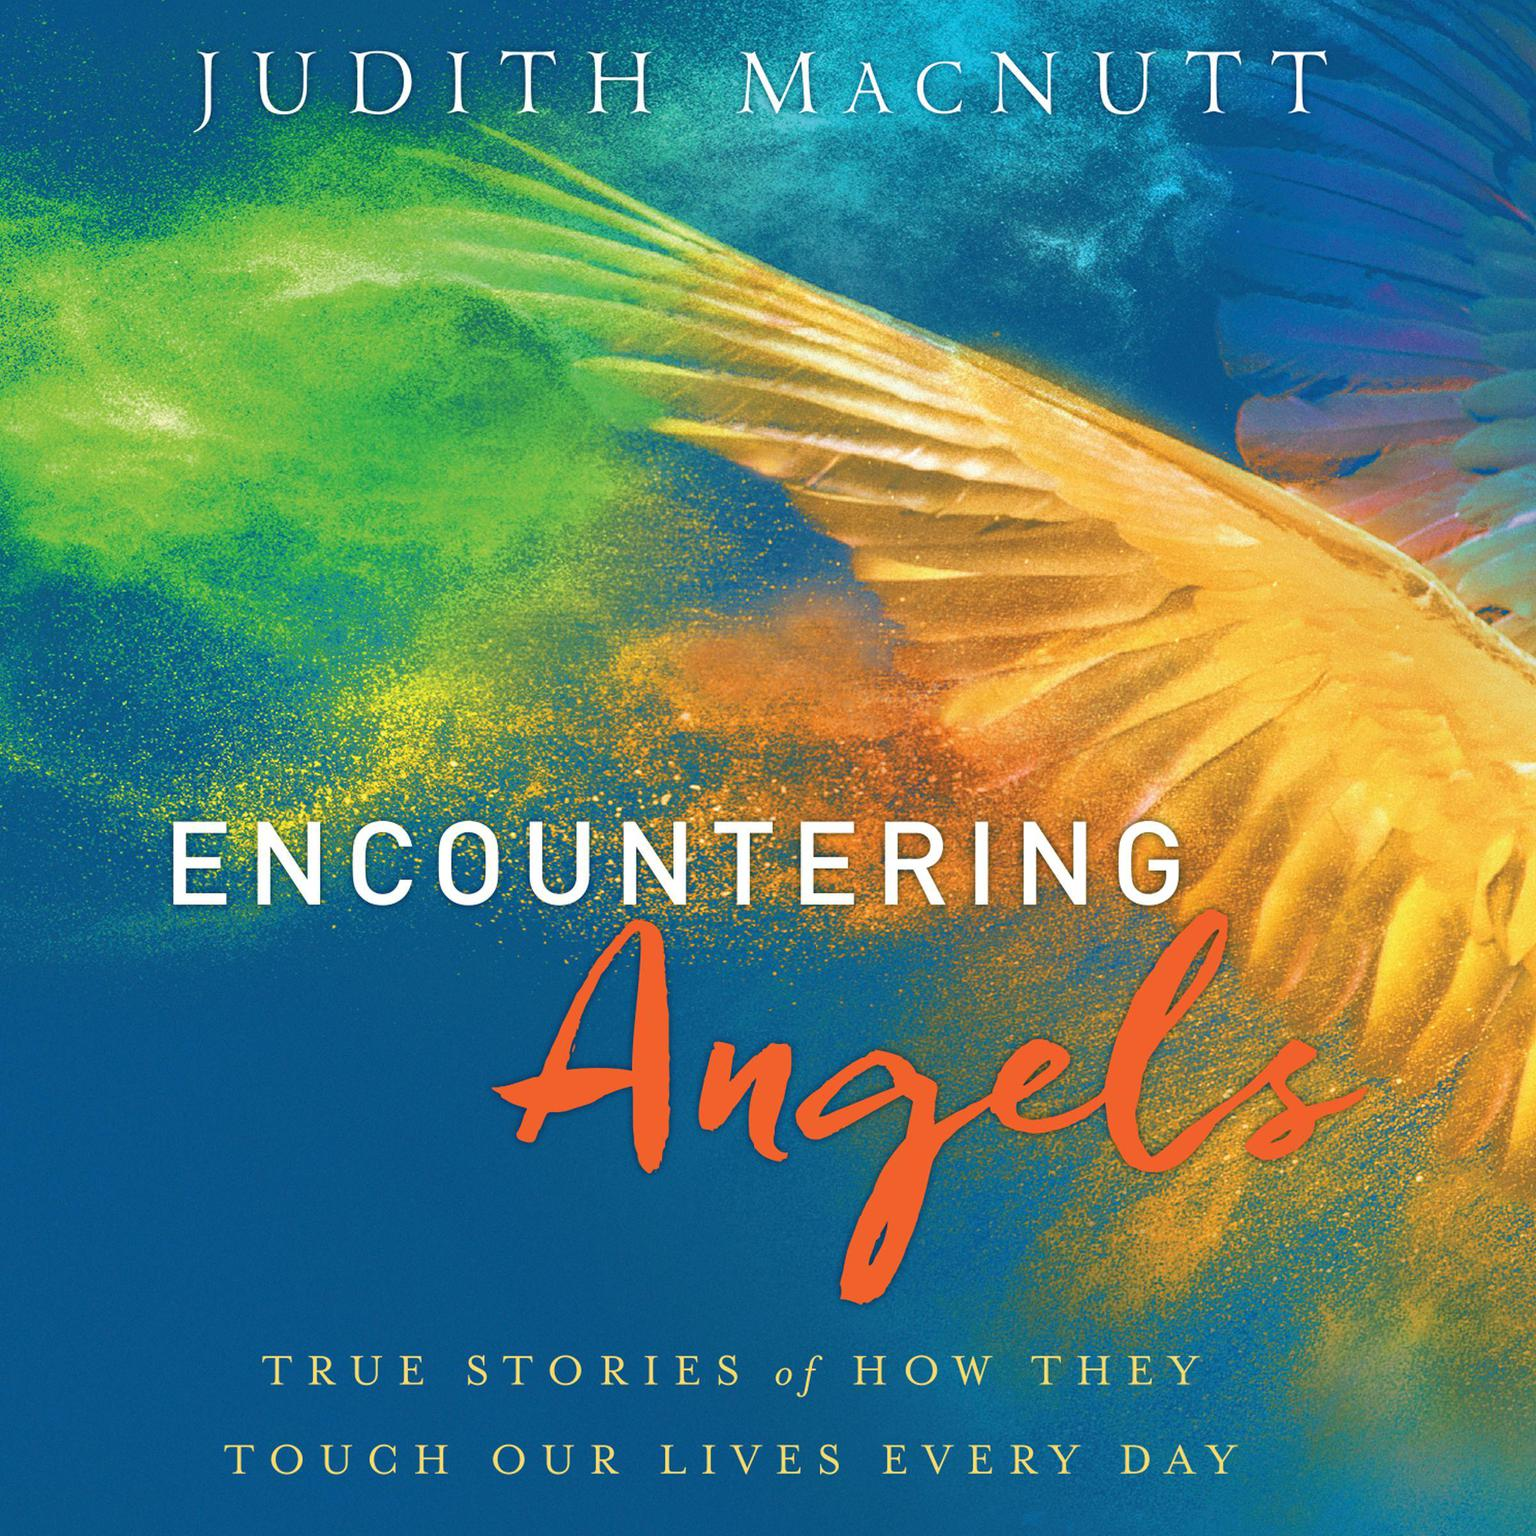 Printable Encountering Angels: True Stories of How They Touch Our Lives Every Day Audiobook Cover Art